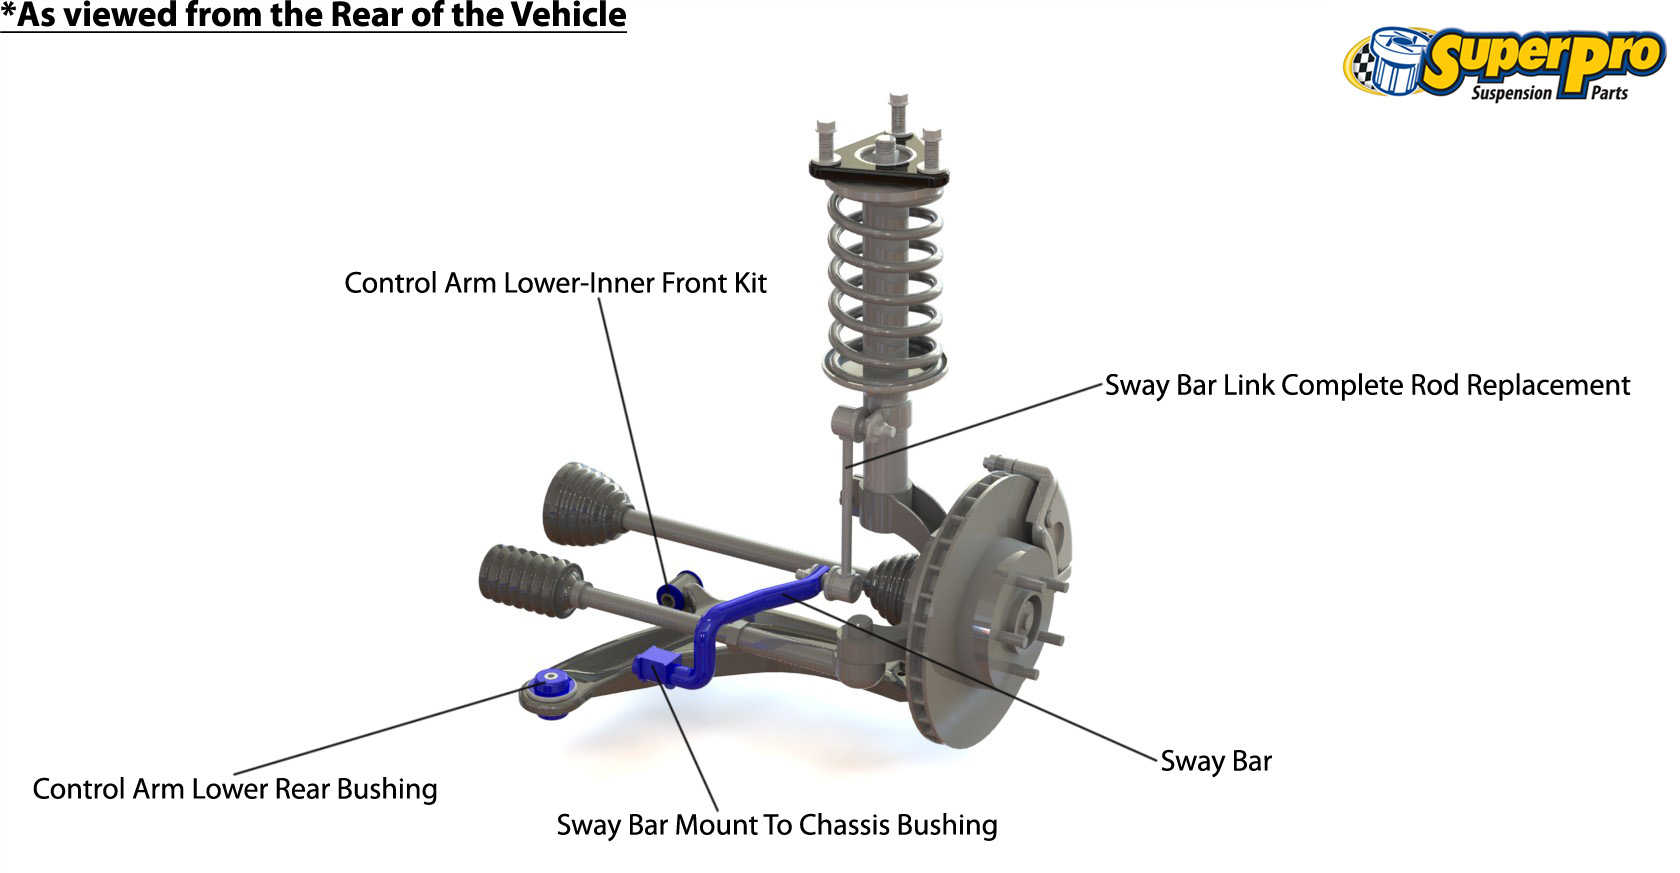 subaru forester parts diagram 2003 gmc sonoma radio wiring superpro suspension and poly bushings for